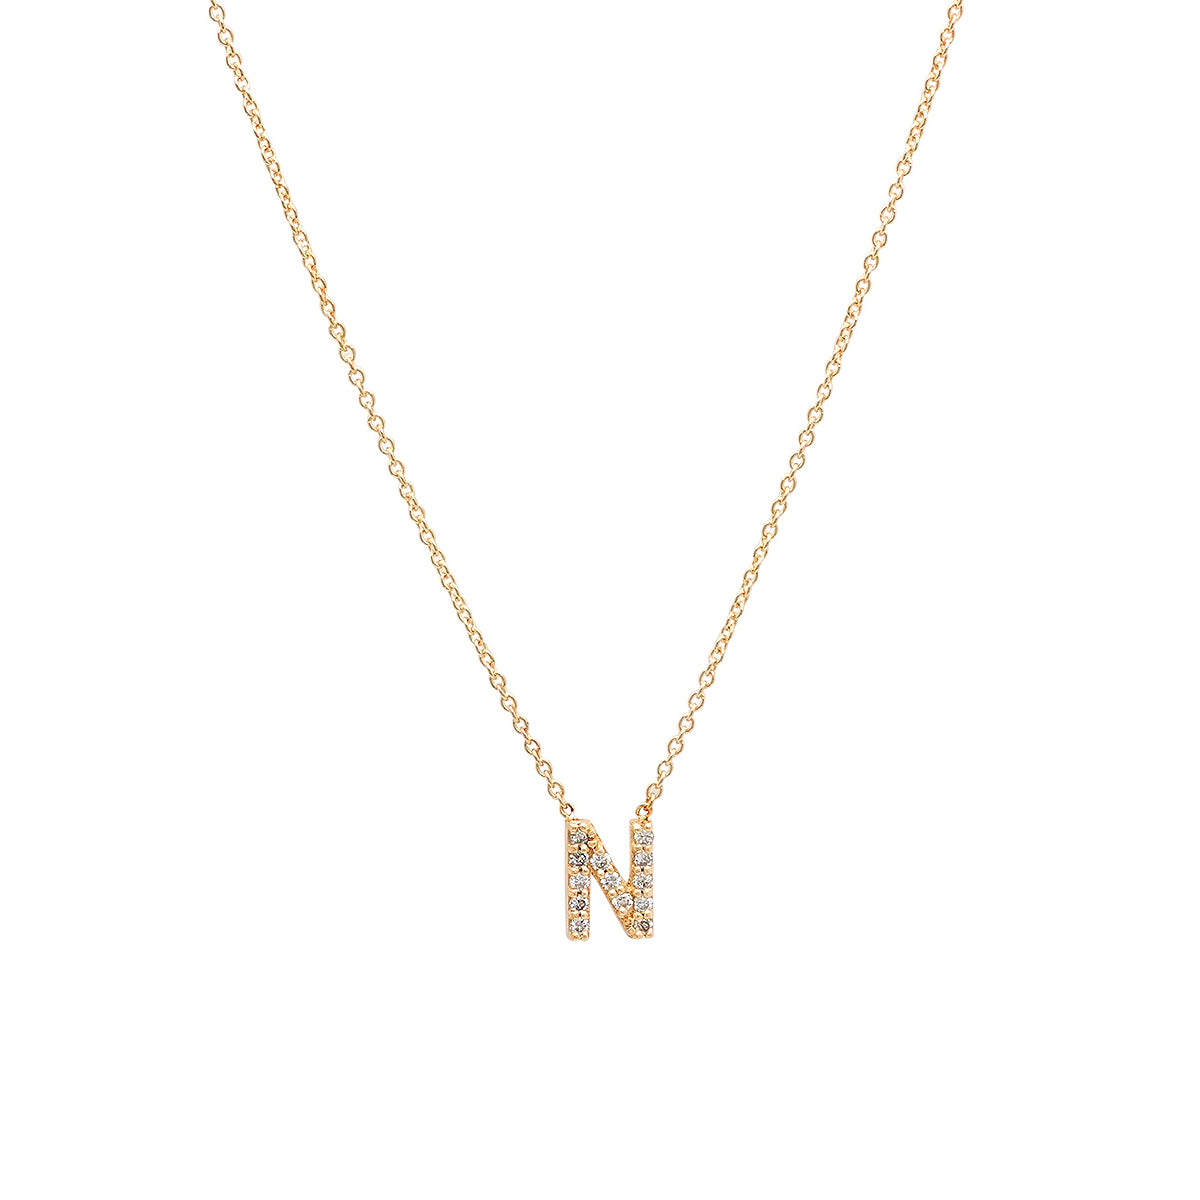 2860d60b80323 Diamond Initial Necklace $475.00 or 4 interest-free installments of $118.75  by More info